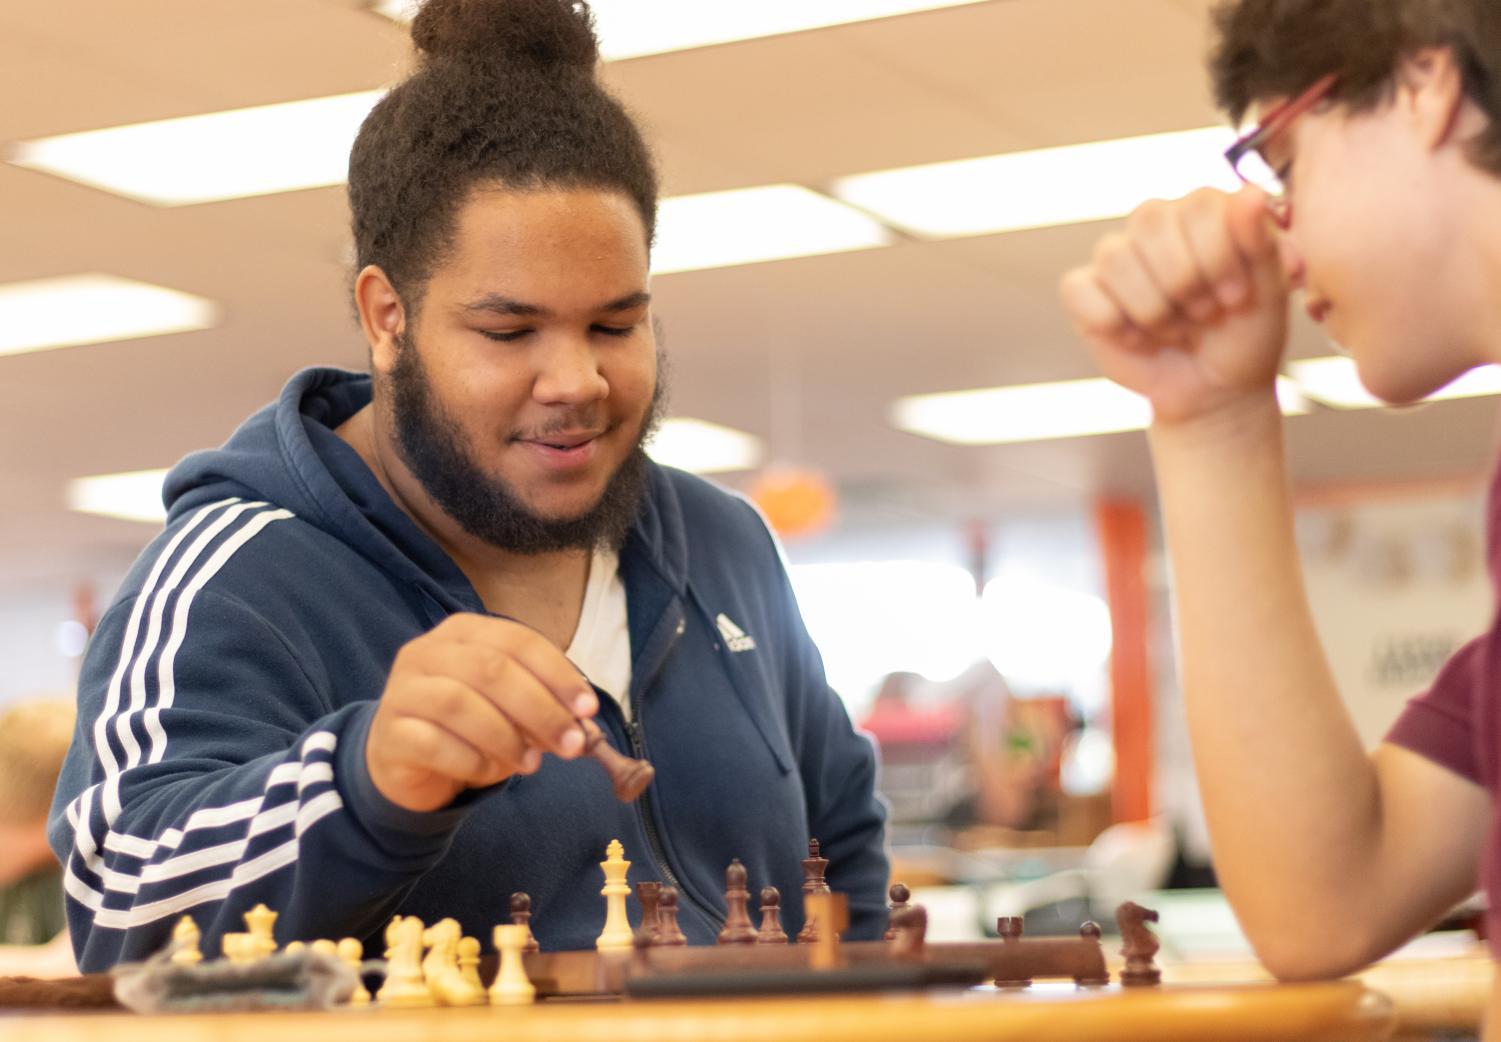 Junior Keenan Thrapp ponders his next move in a game of chess. Thrapp's love of chess developed at an early age with his mother's encouragement.